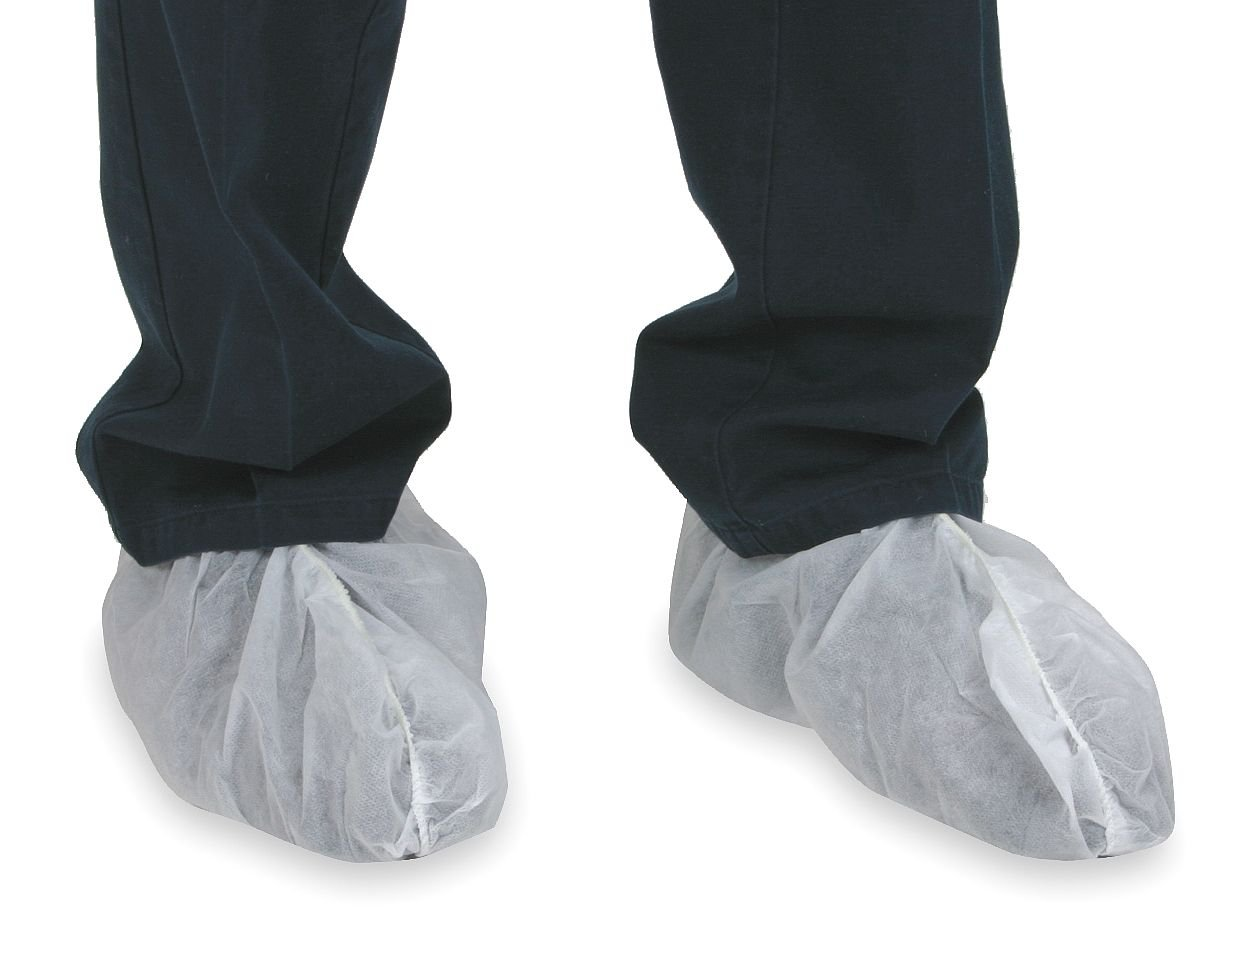 CONDOR 2RUZ2 Low Disposable Shoe Cover, White, PK 50